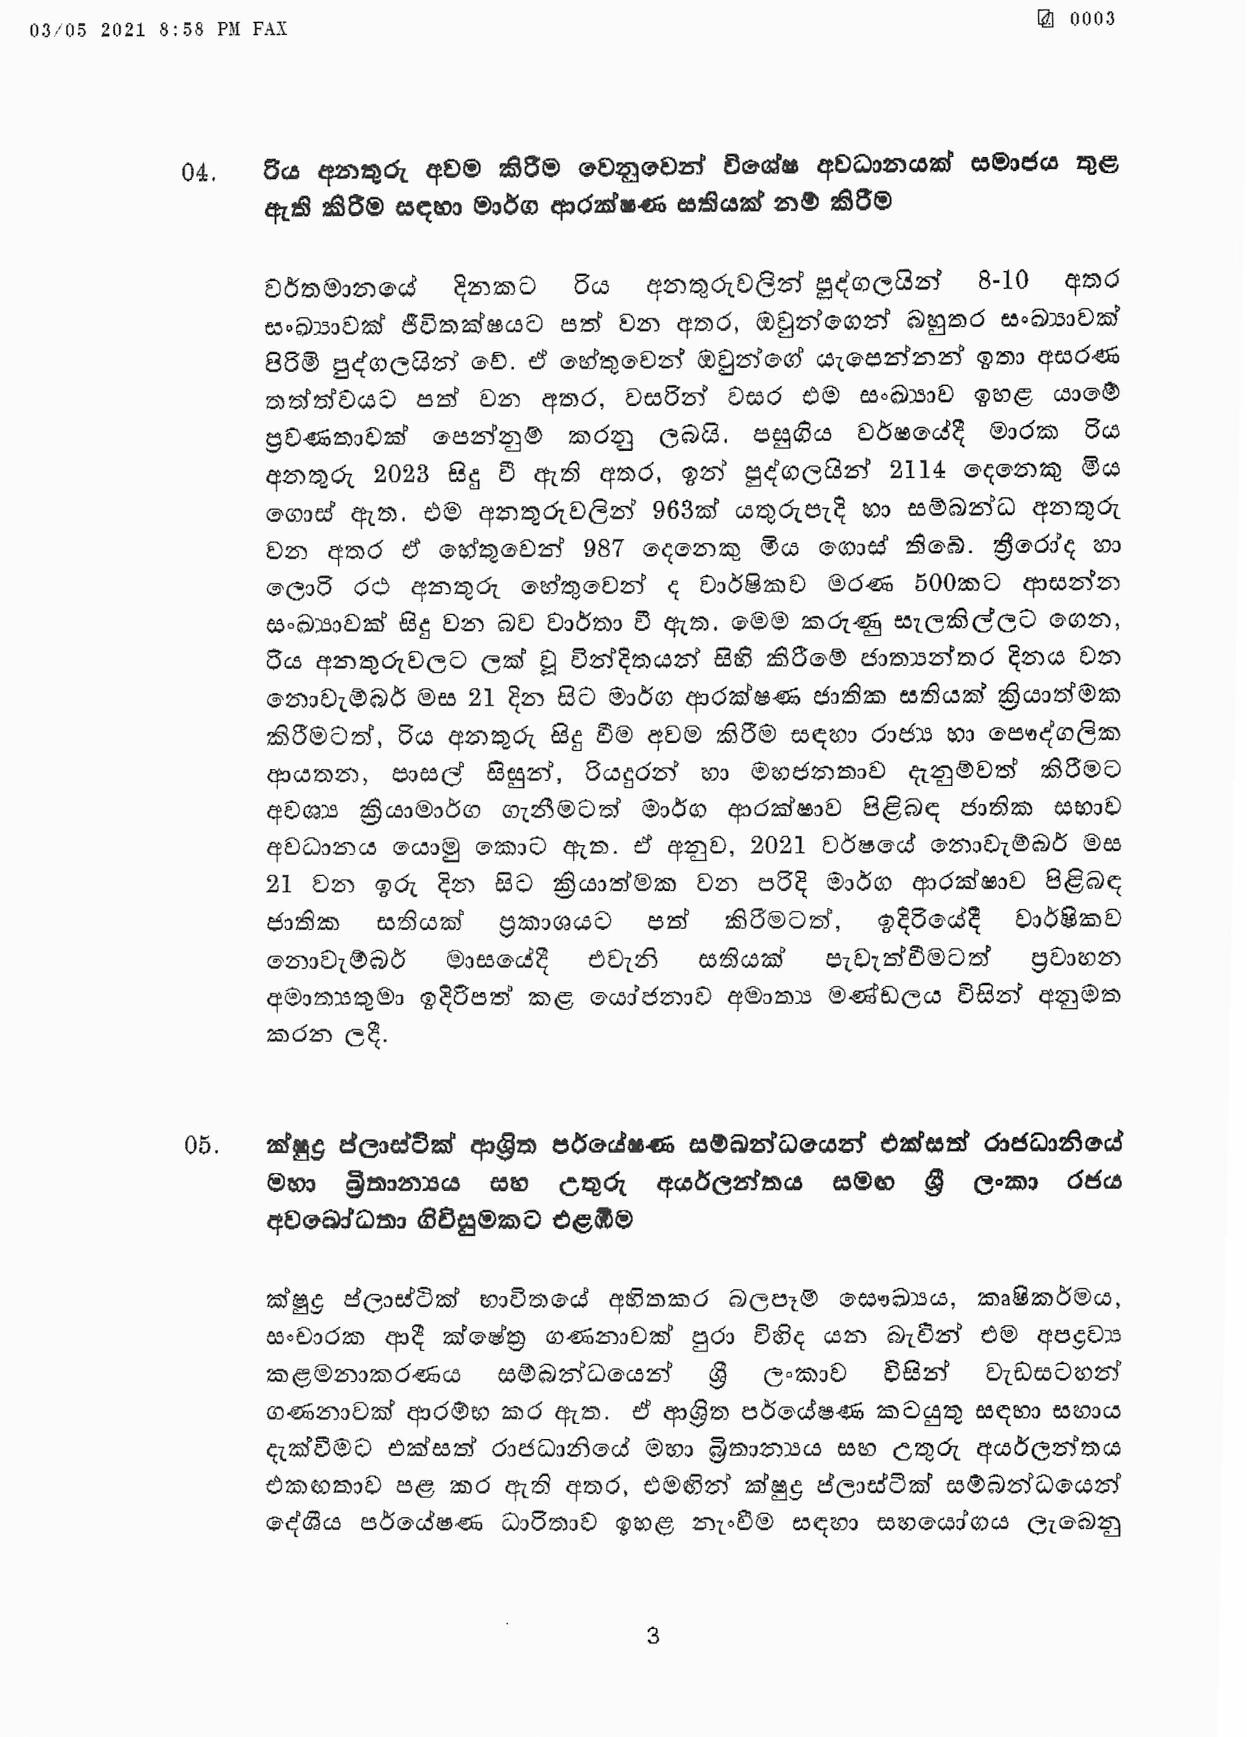 Cabinet Decision on 03.05.2021 page 003